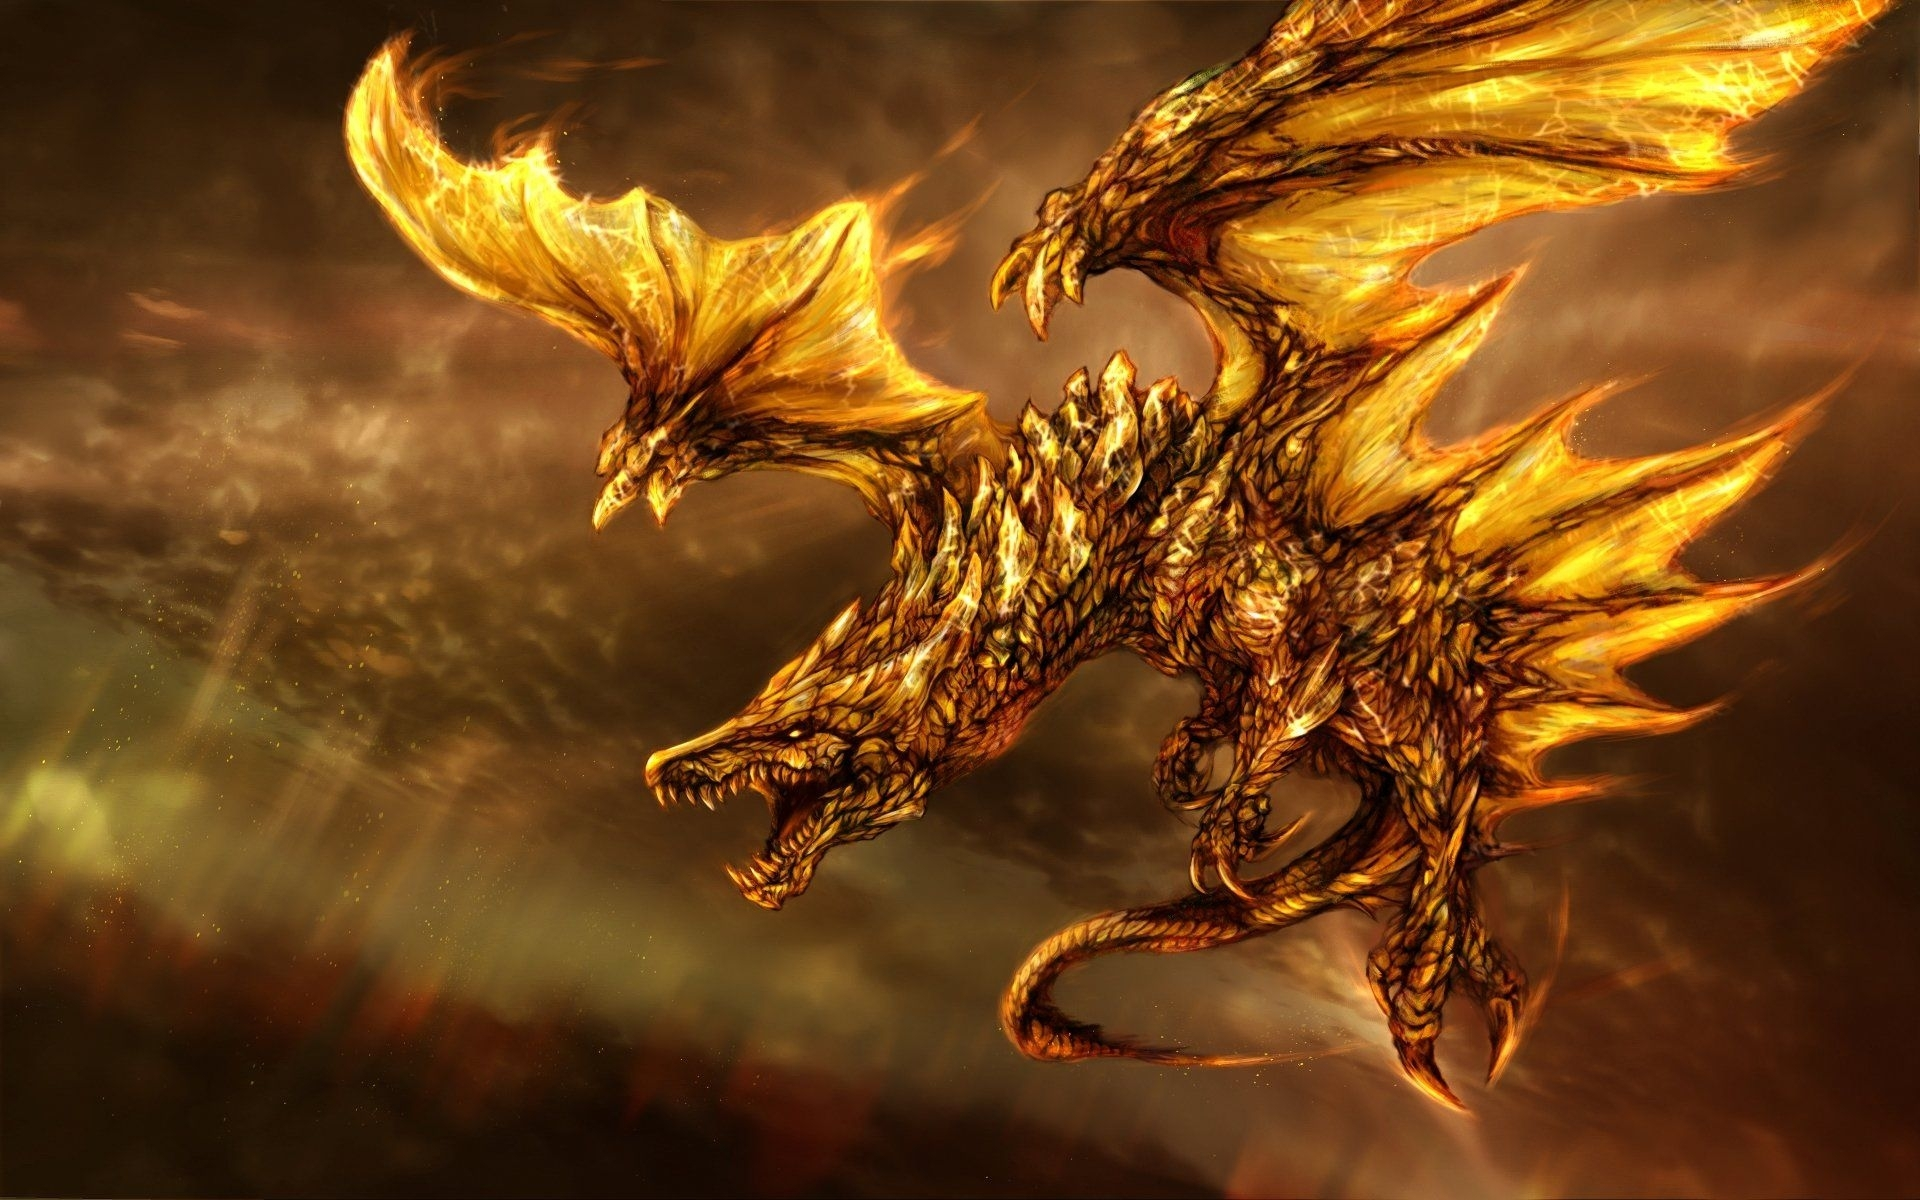 dragon pictures | dragon wallpapers hd free download | wallcapture